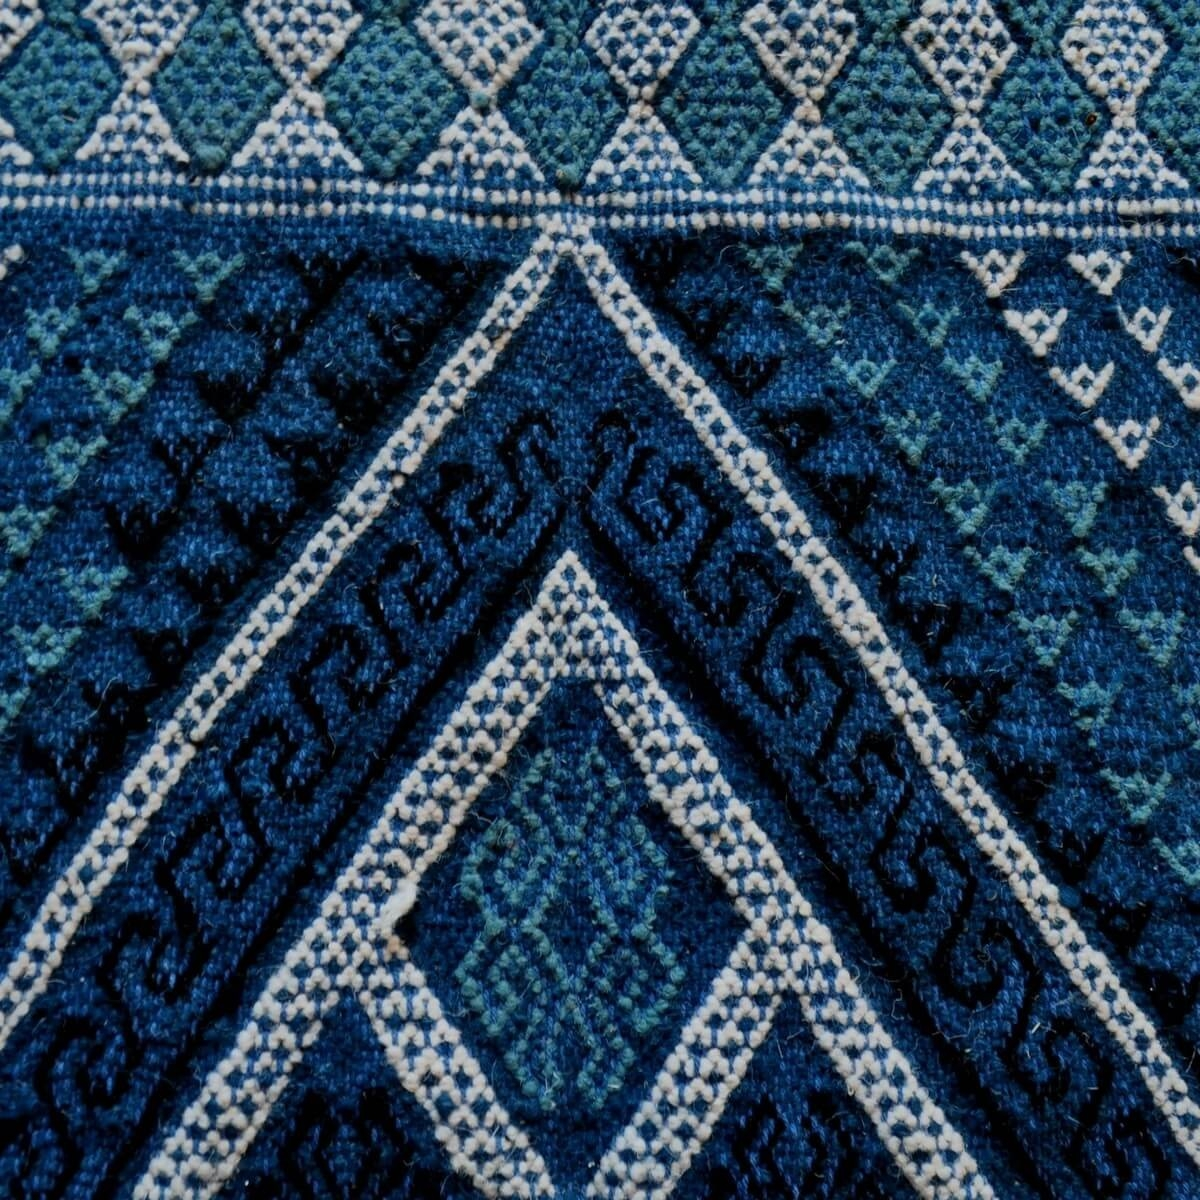 Berber carpet Rug Margoum Nidhal 120x180 Blue/White (Handmade, Wool, Tunisia) Tunisian margoum rug from the city of Kairouan. Re